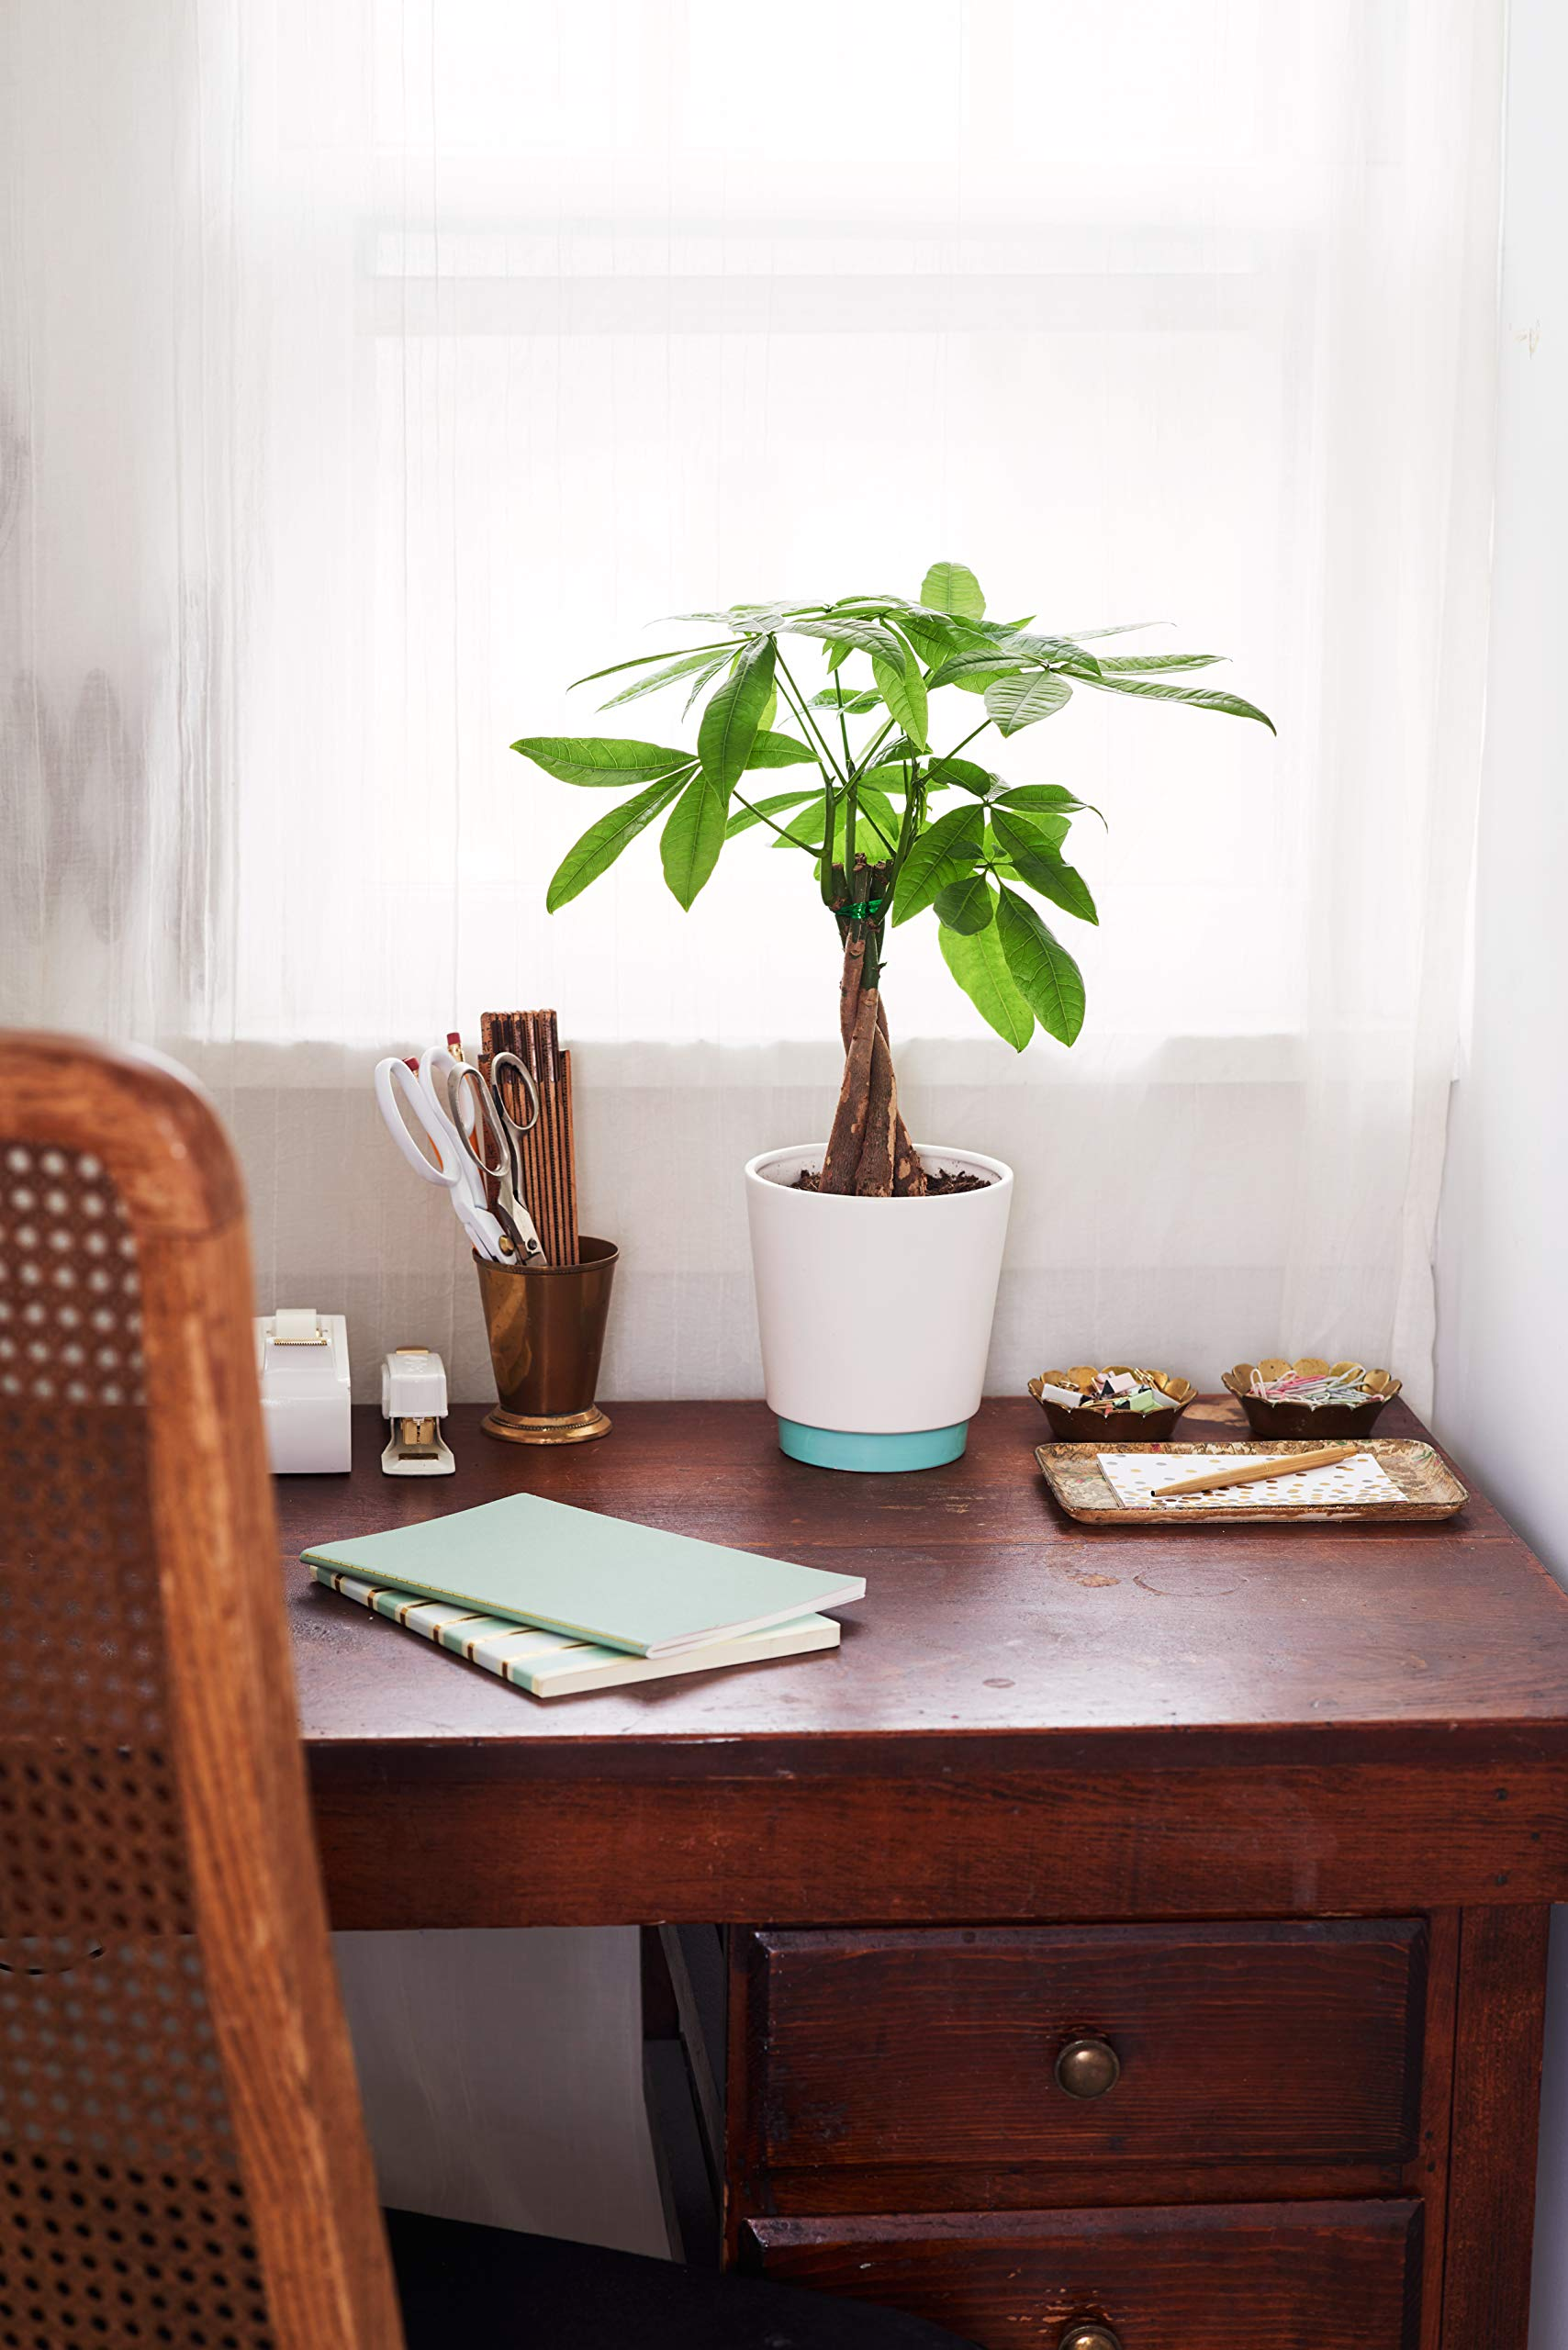 Mother's Day Hallmark Flowers 15'' to 18'' Tall Money Tree in White and Teal Ceramic Container by Hallmark Flowers (Image #2)